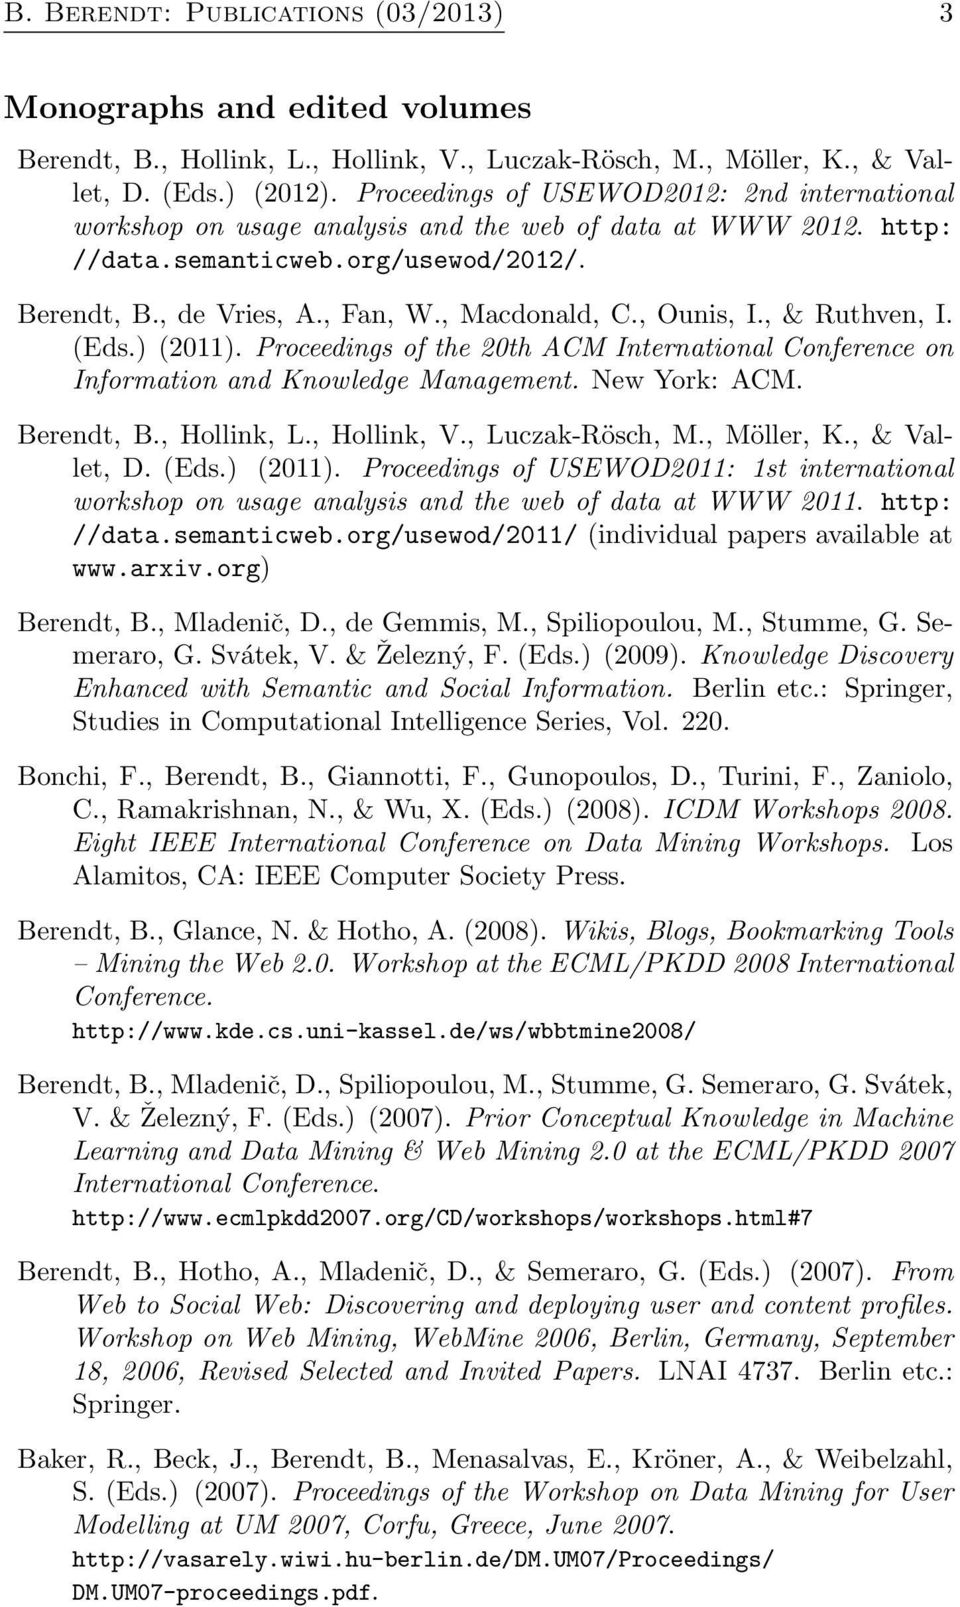 , Ounis, I., & Ruthven, I. (Eds.) (2011). Proceedings of the 20th ACM International Conference on Information and Knowledge Management. New York: ACM. Berendt, B., Hollink, L., Hollink, V.